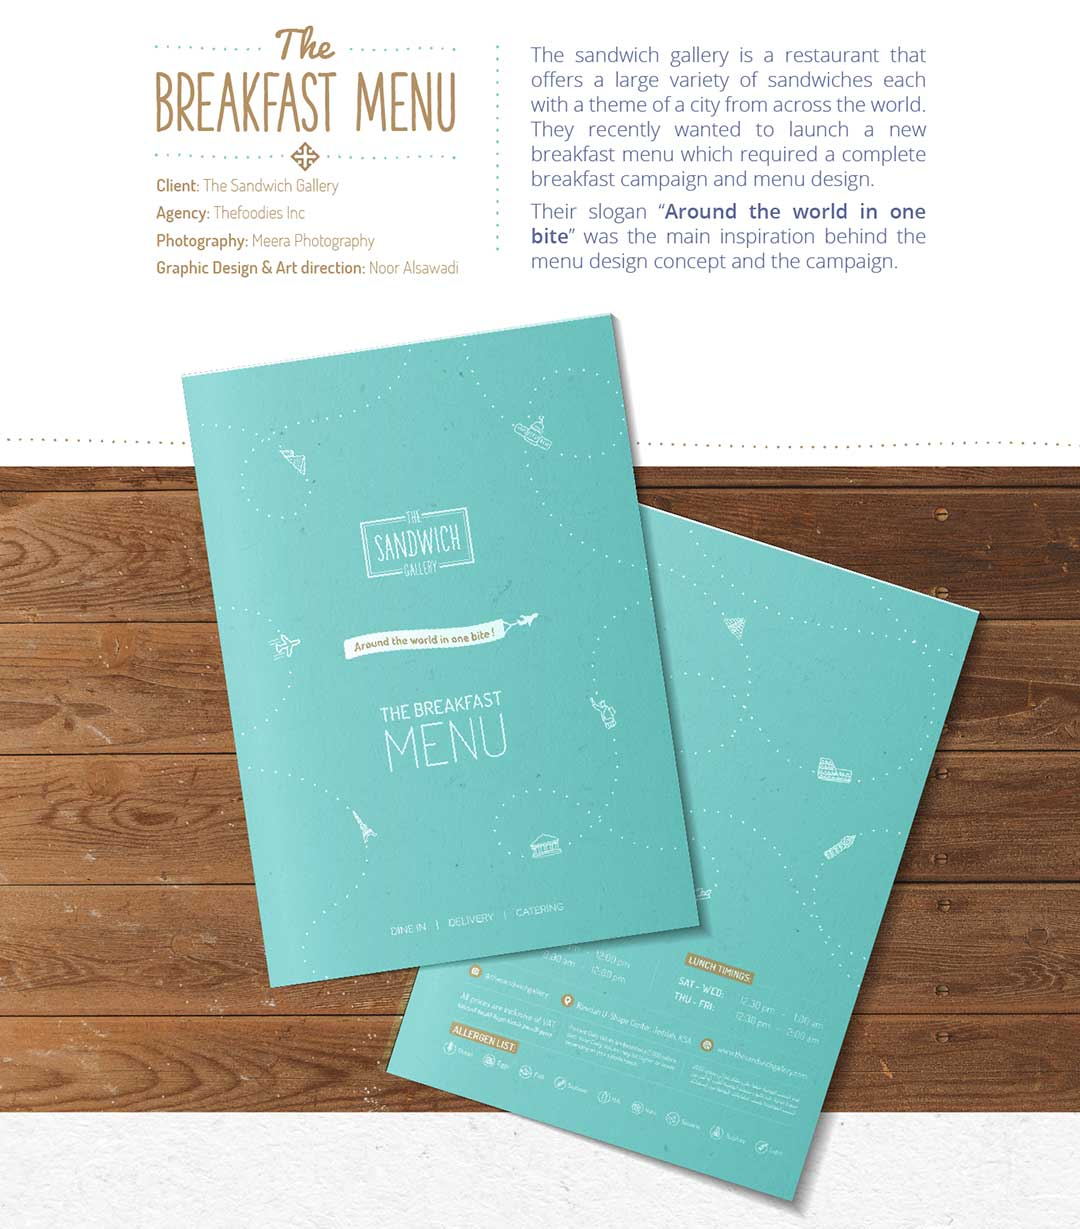 The sandwich gallery breakfast menu design concept.